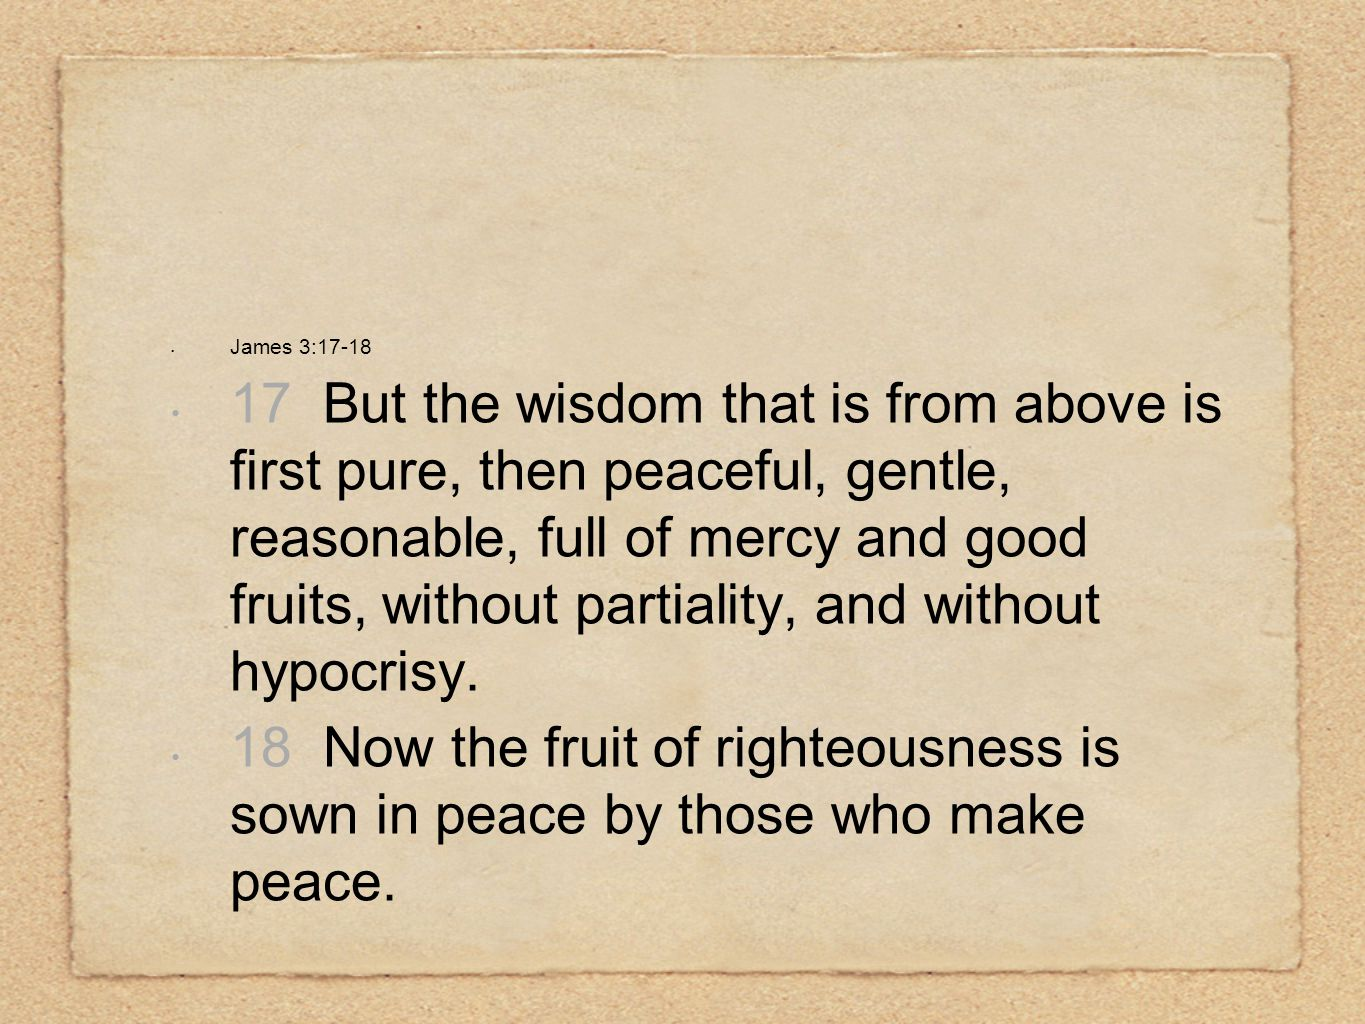 James 3:17-18 17 But the wisdom that is from above is first pure, then peaceful, gentle, reasonable, full of mercy and good fruits, without partiality, and without hypocrisy.